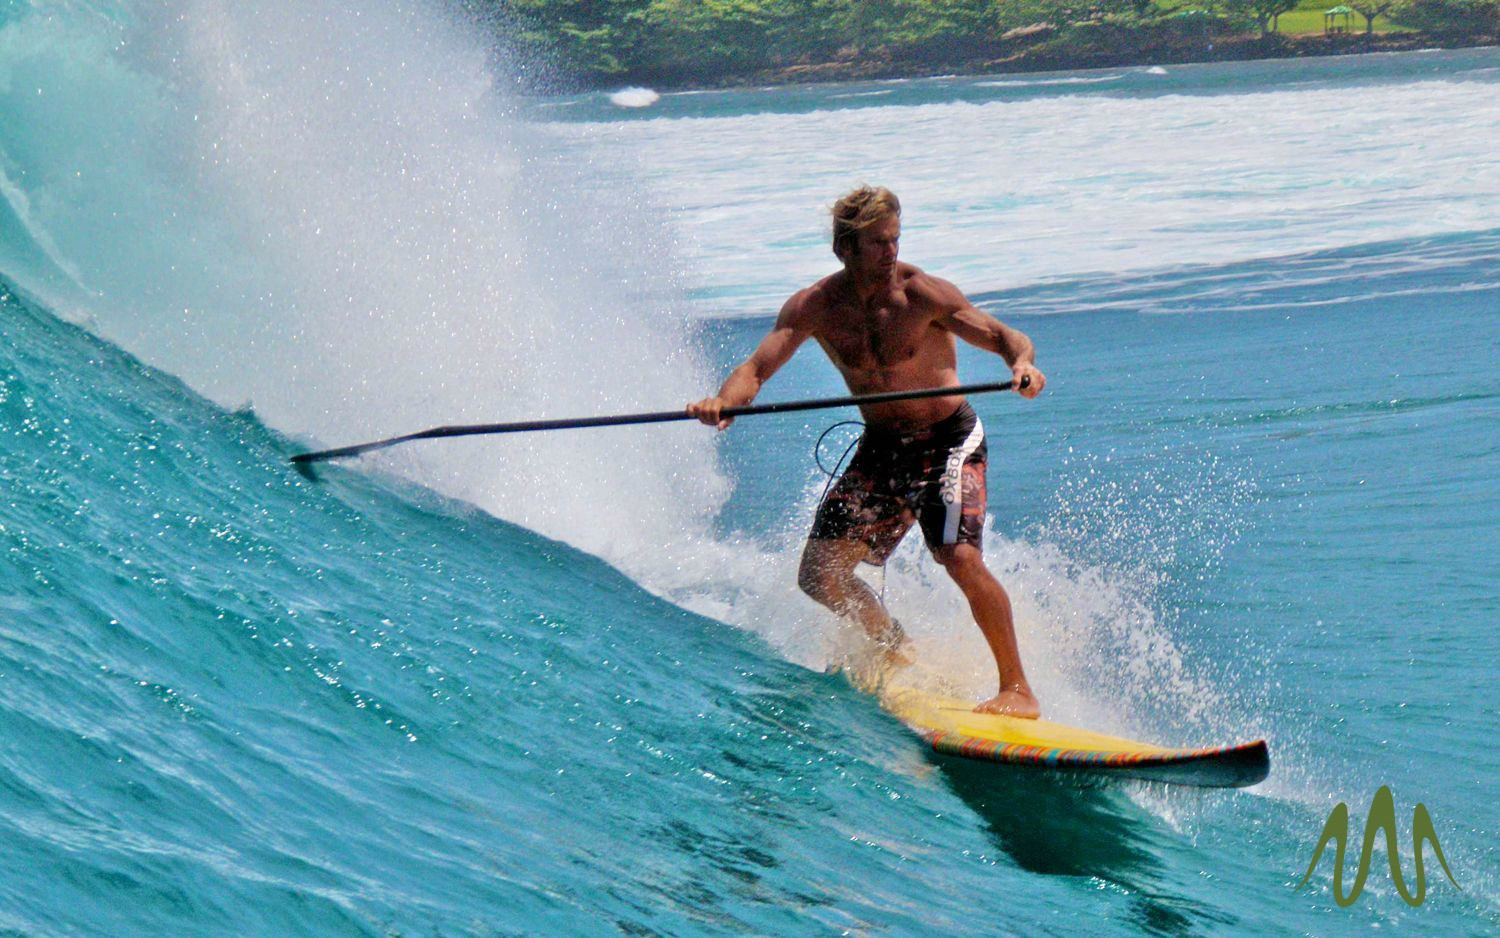 Surfs Up - The Big Waves - Playing with Science